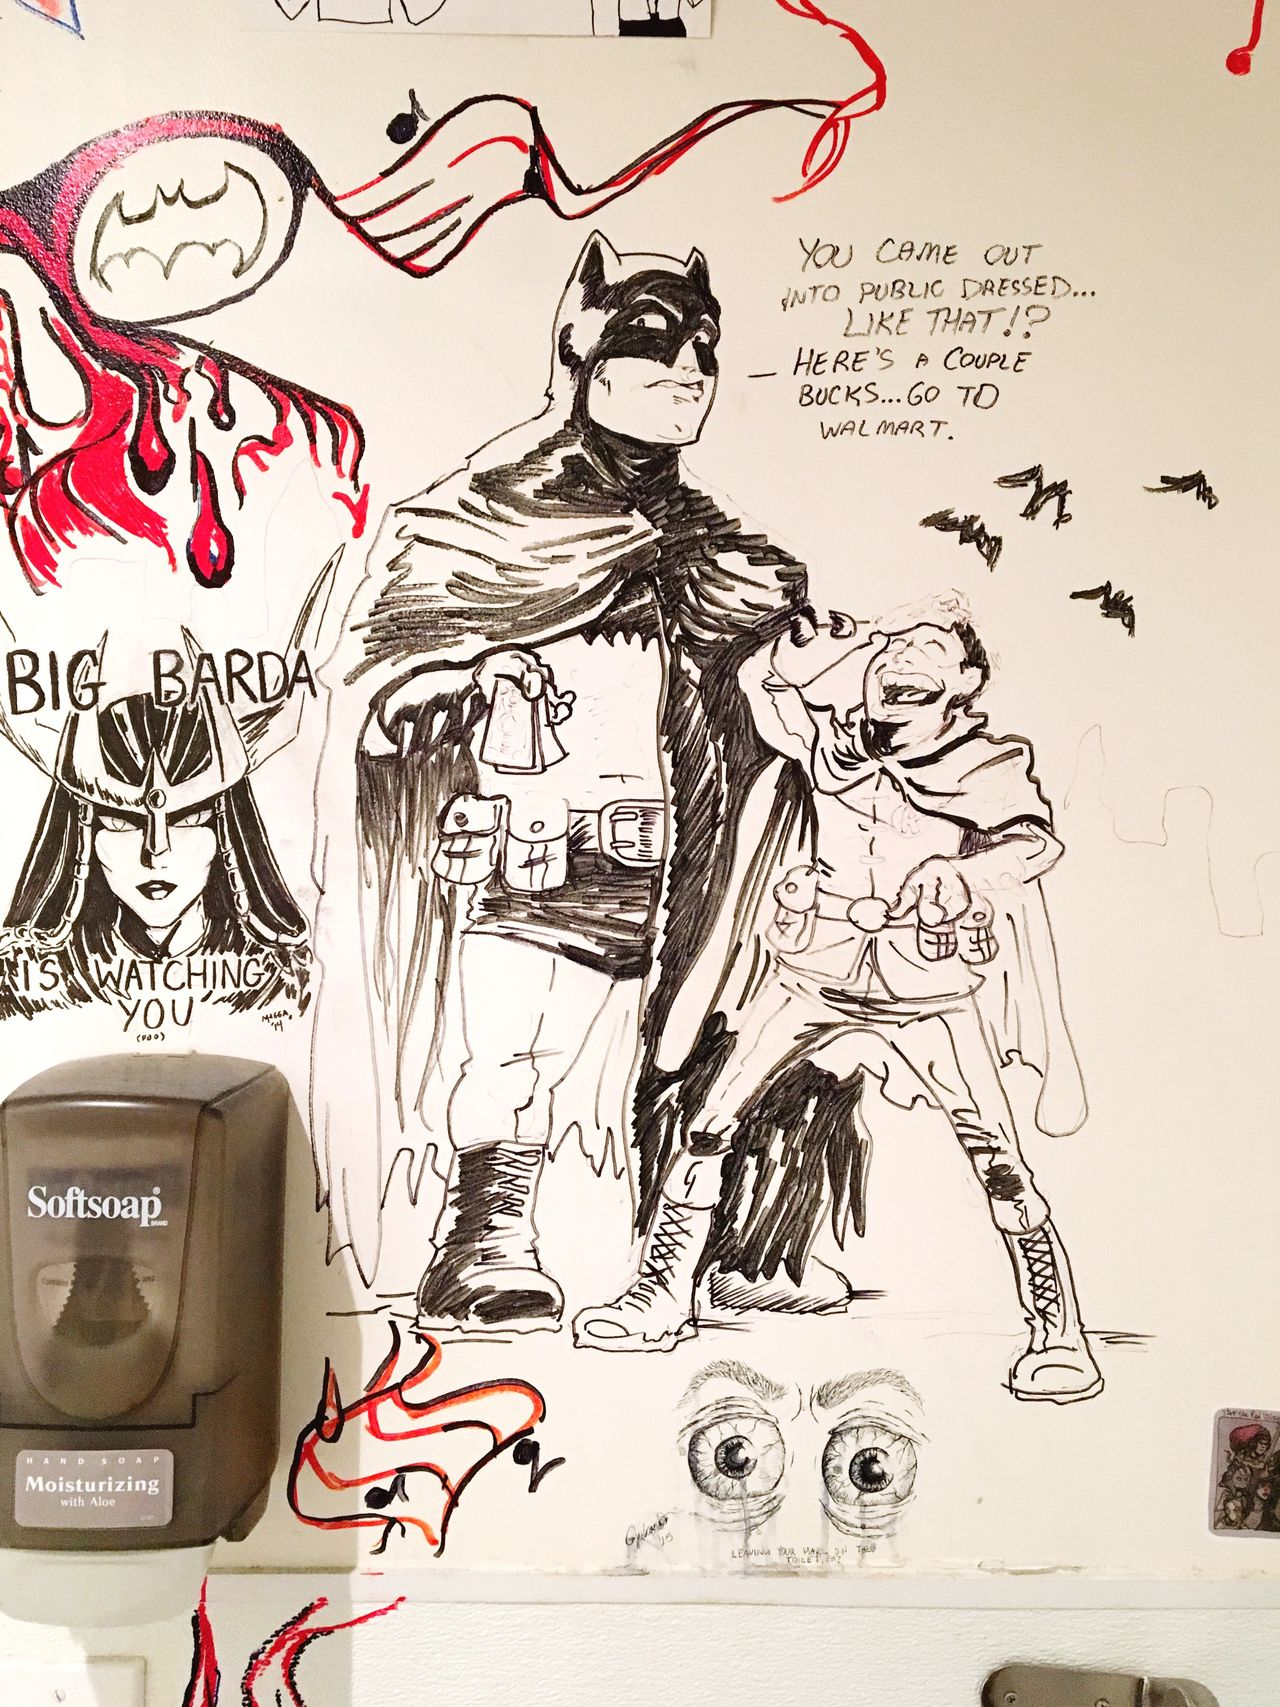 Big Barda Batman And Robin Batman Robin Fantom Comics Fantom Dc Check This Out Hanging Out DC Comics Taking Photos Enjoying Life Showcase April DupontCircle Check This Out Graffiti Illumination Illustration Comic Art